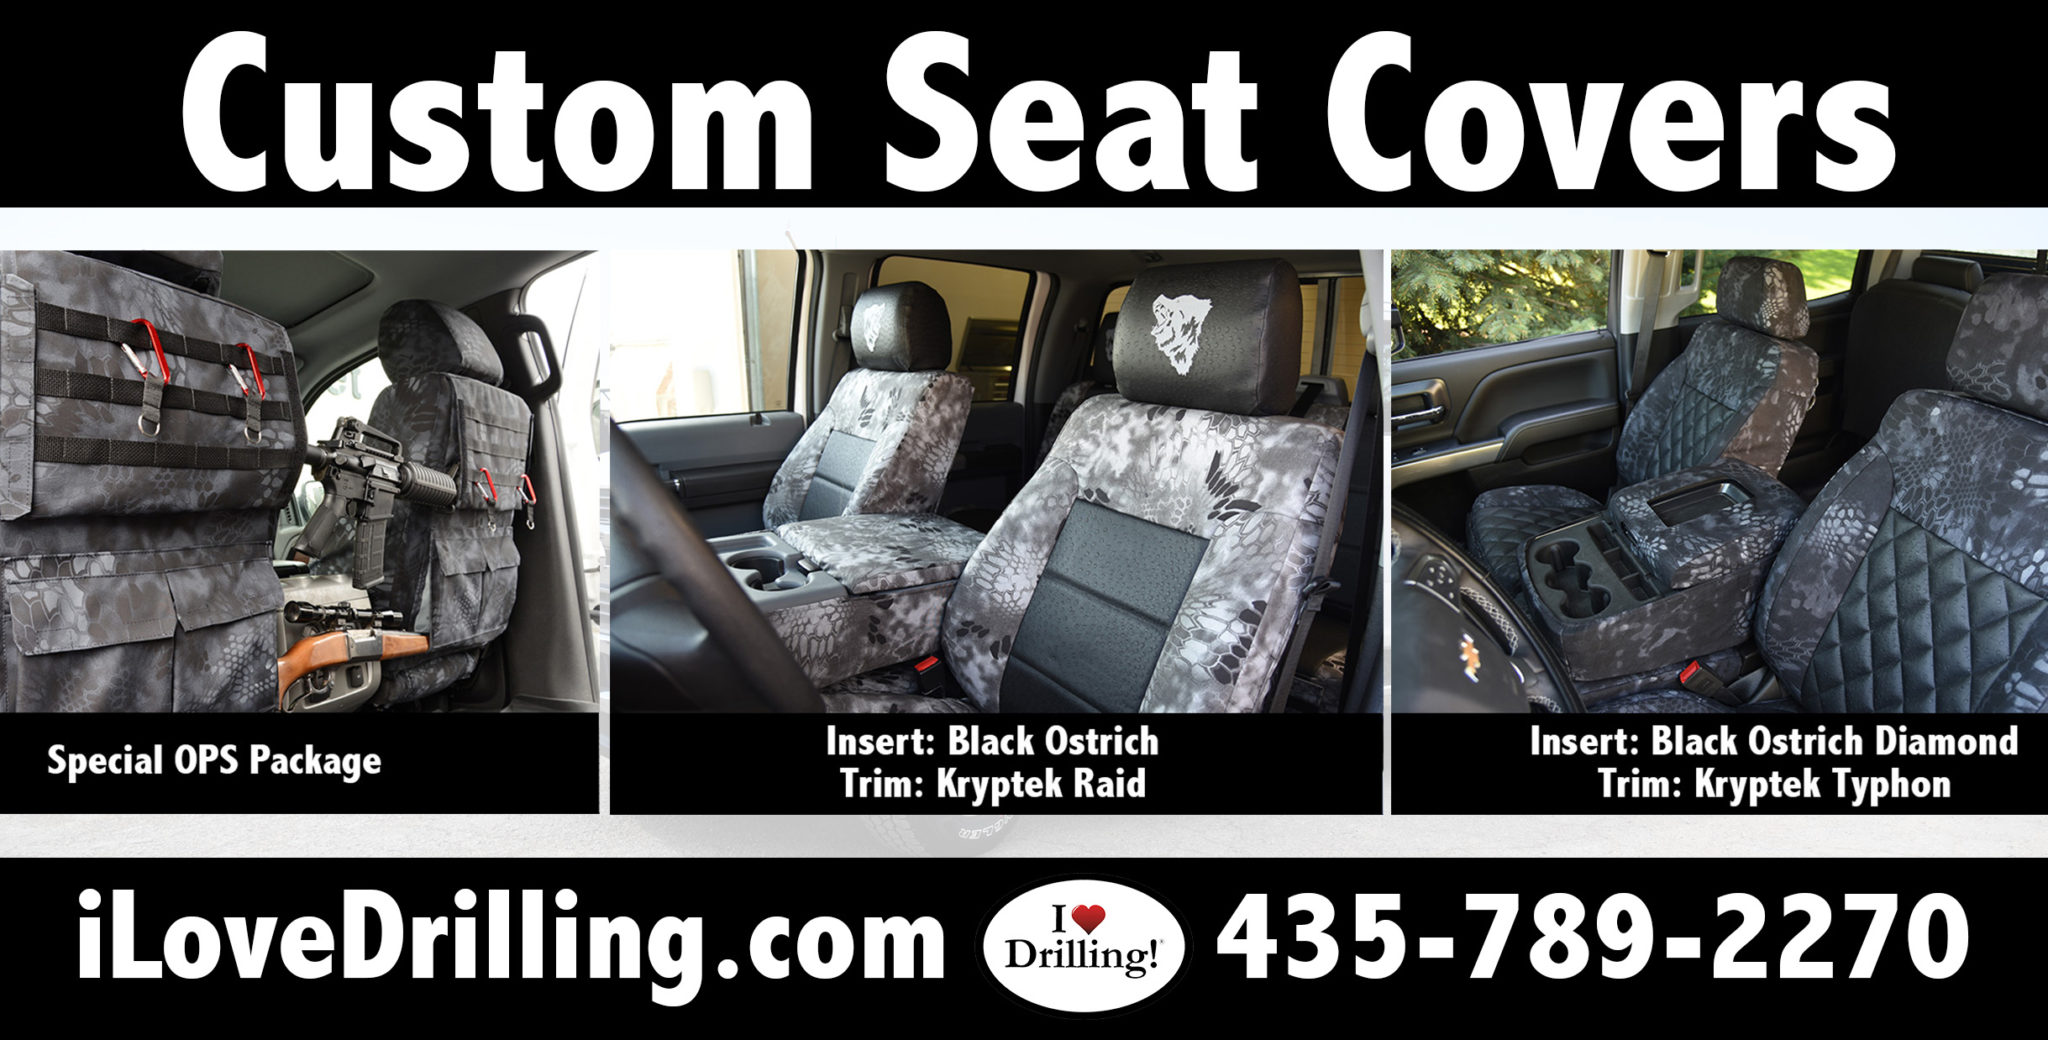 I love drilling custom seat covers